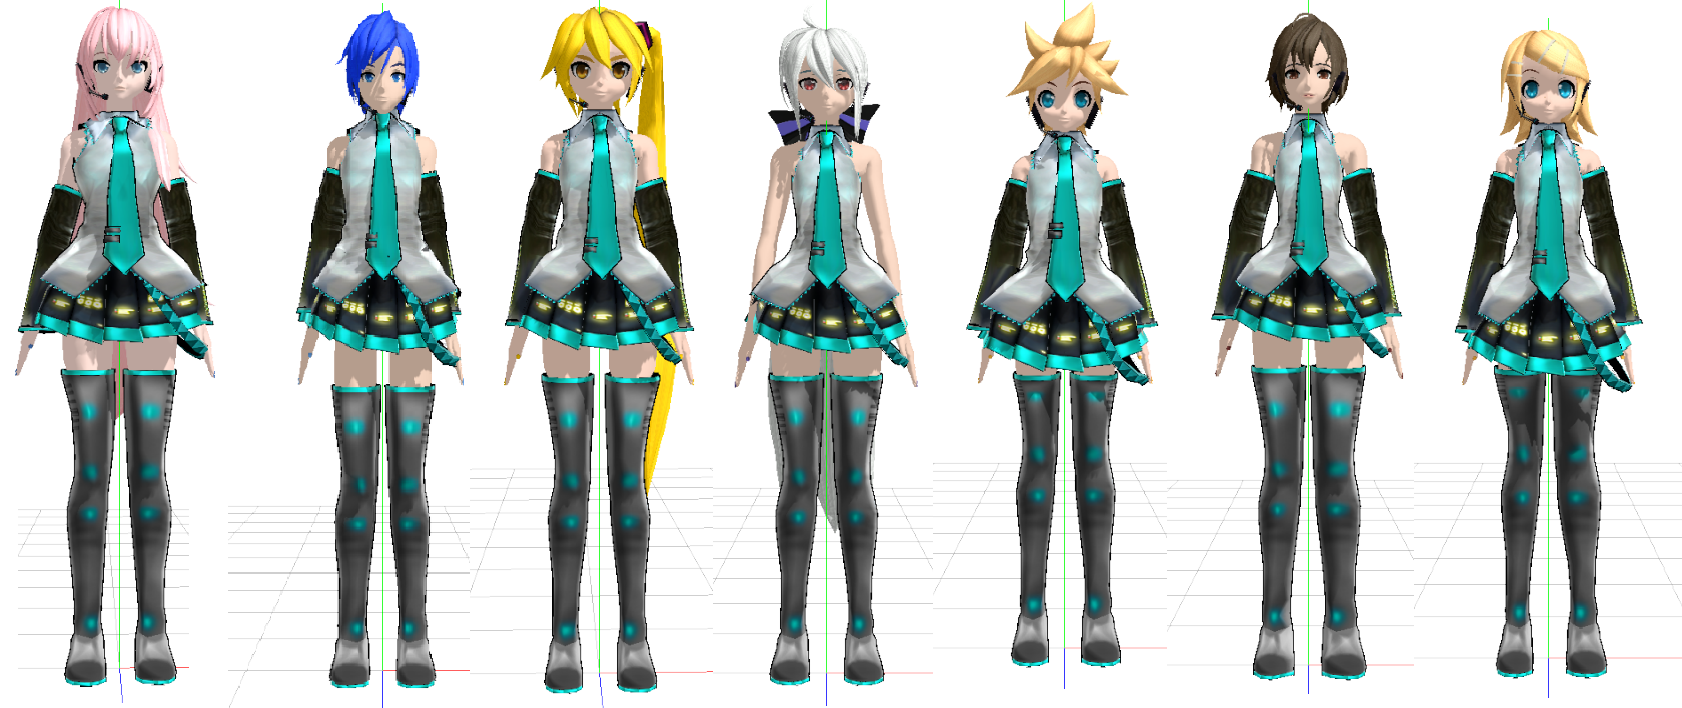 Mmd Dt Models In Miku's Outfit Pack Download By Dianita98